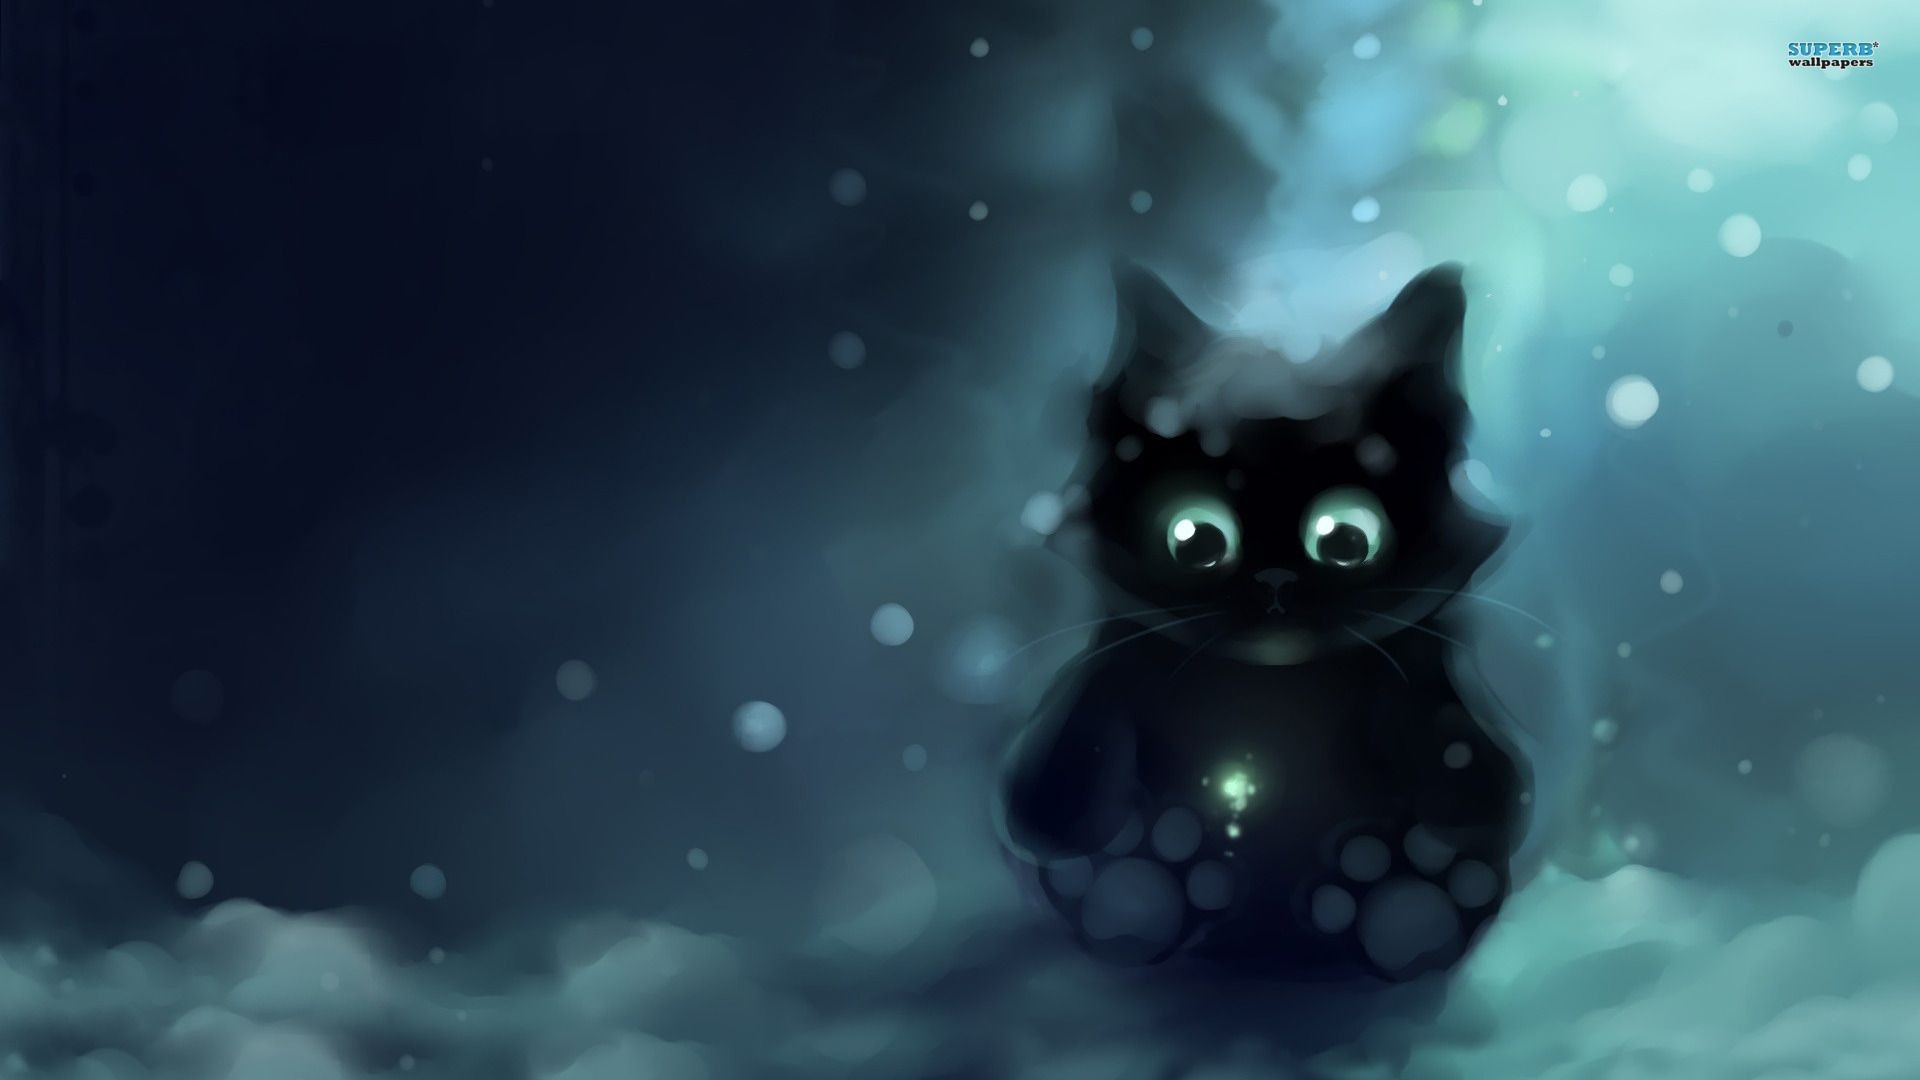 Cartoon cat wallpapers 79 background pictures - Cartoon cat background ...